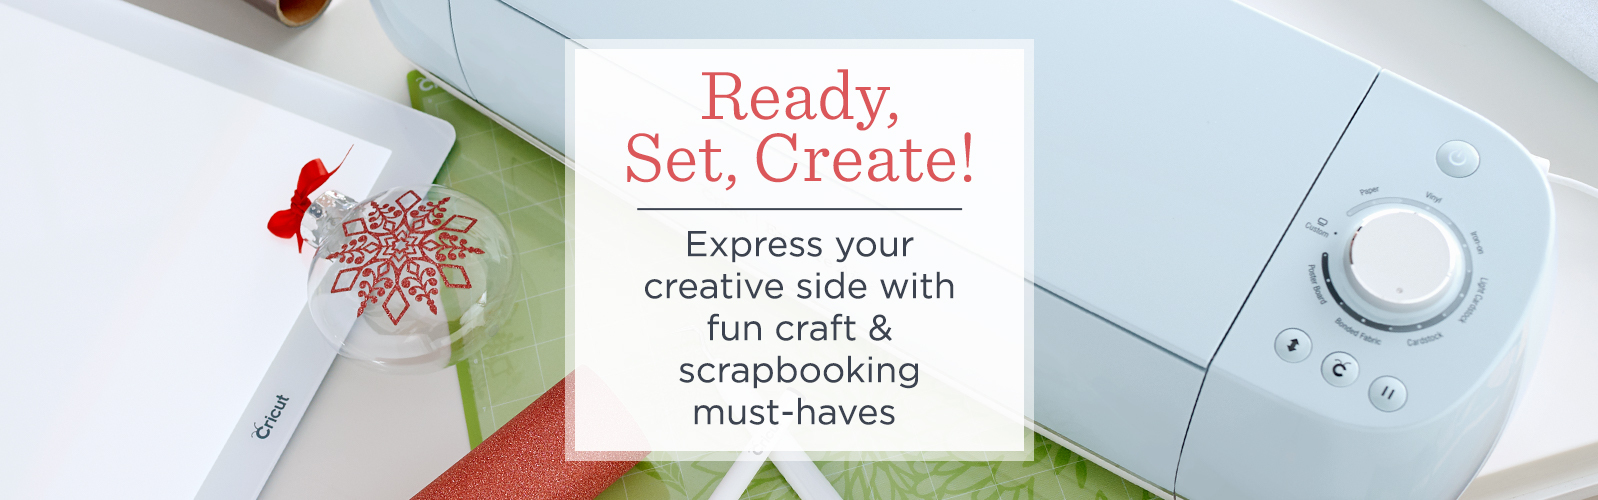 Ready, Set, Create!  Express your creative side with fun craft & scrapbooking must-haves